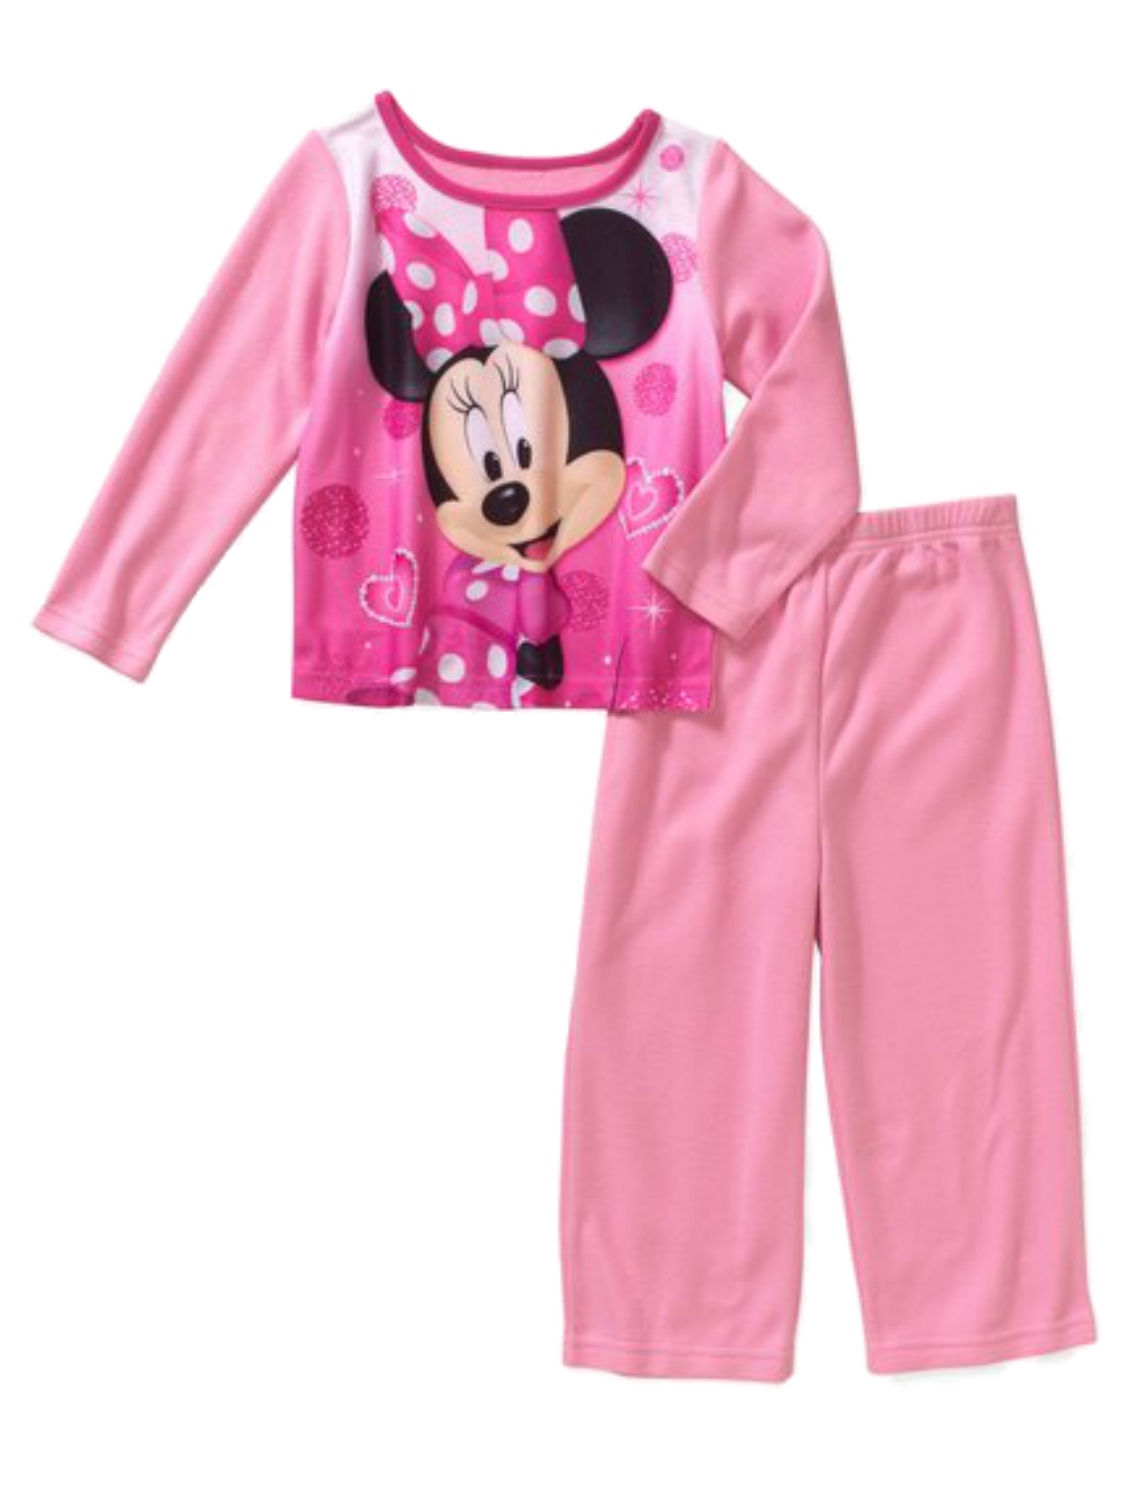 Baby Toddler Girl Assorted Characters Sleepwear Set